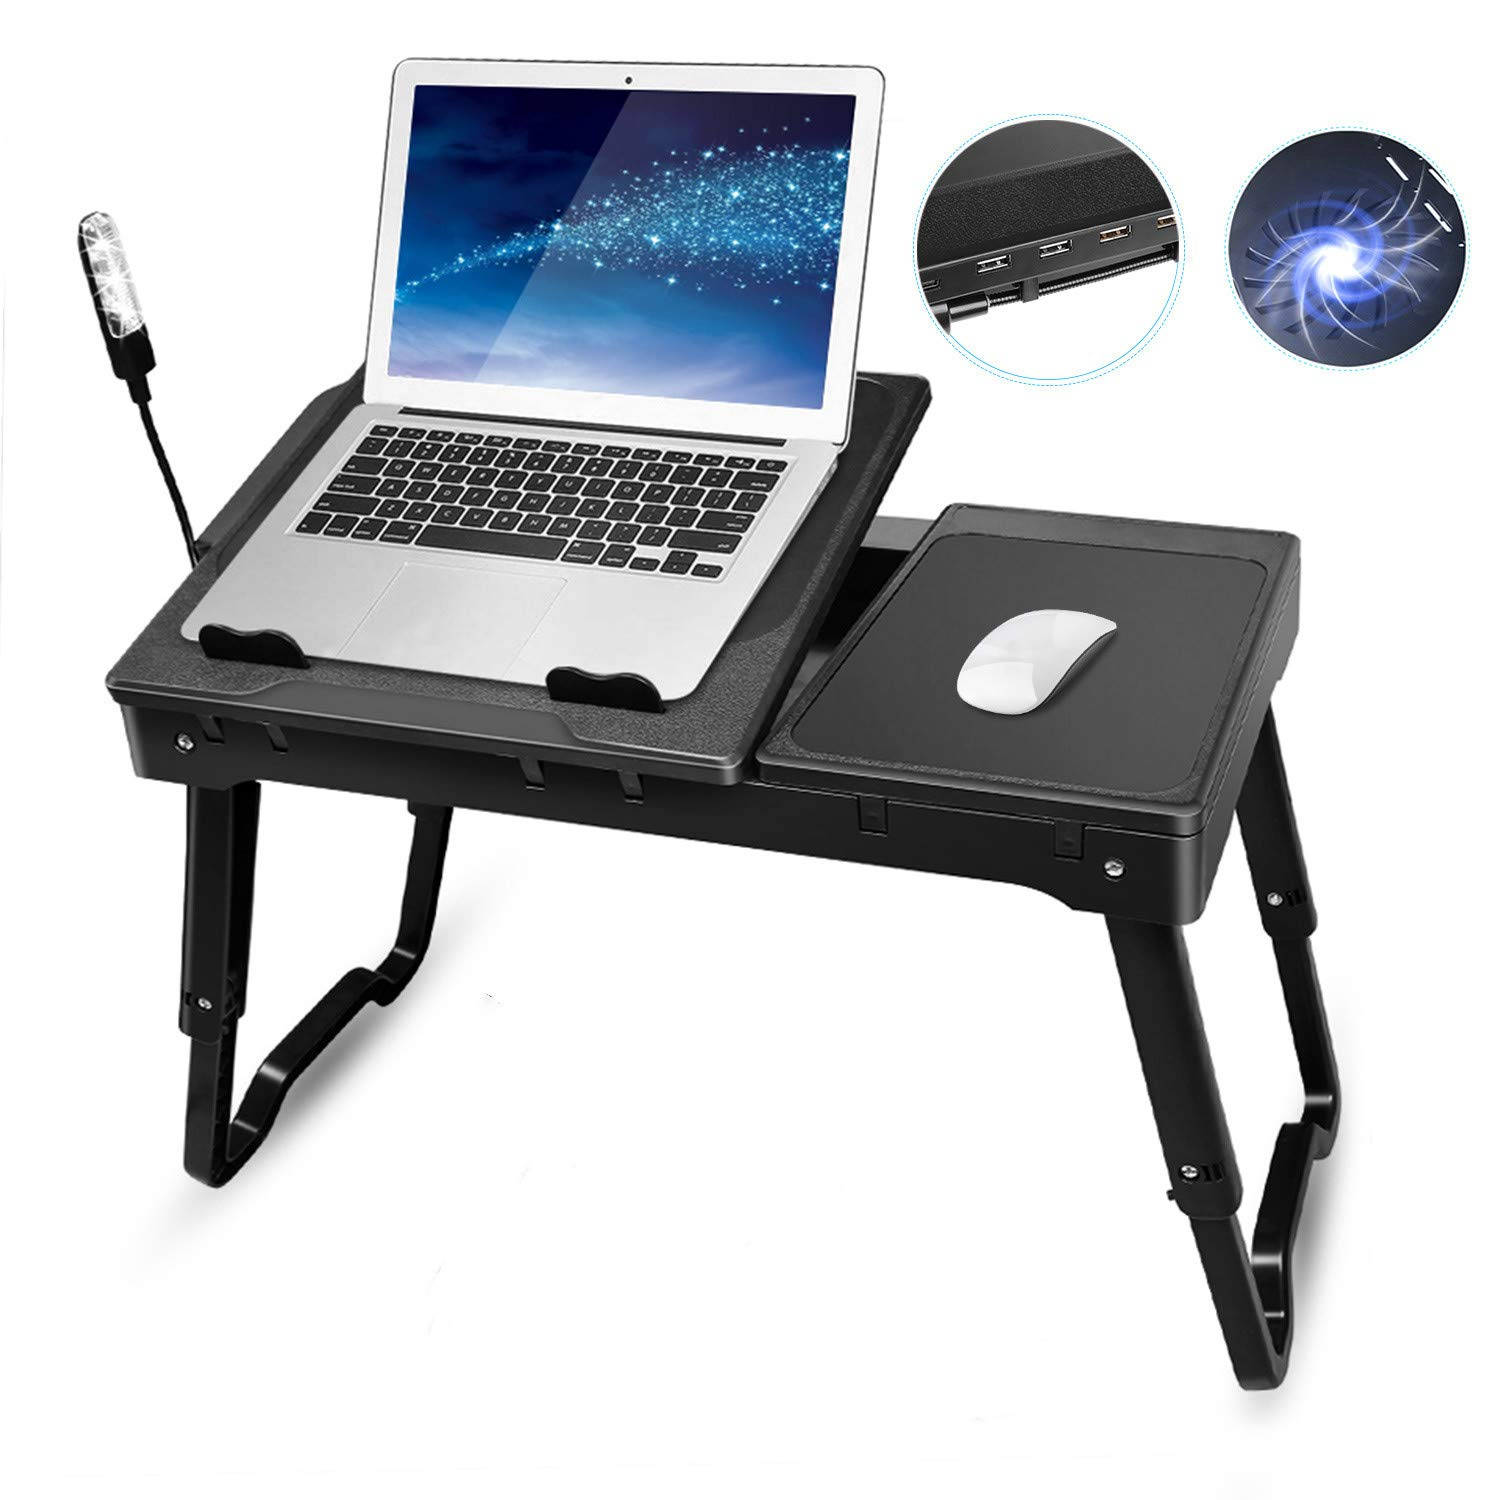 Laptop Bed Tray Table, TeqHome Adjustable Laptop Bed Stand, Portable Standing Table with Foldable Legs, Lap Tablet Laptop Table for Bed Sofa Couch Desk-Internal Cooling Fan-LED Desk Lamp-4 Port USB